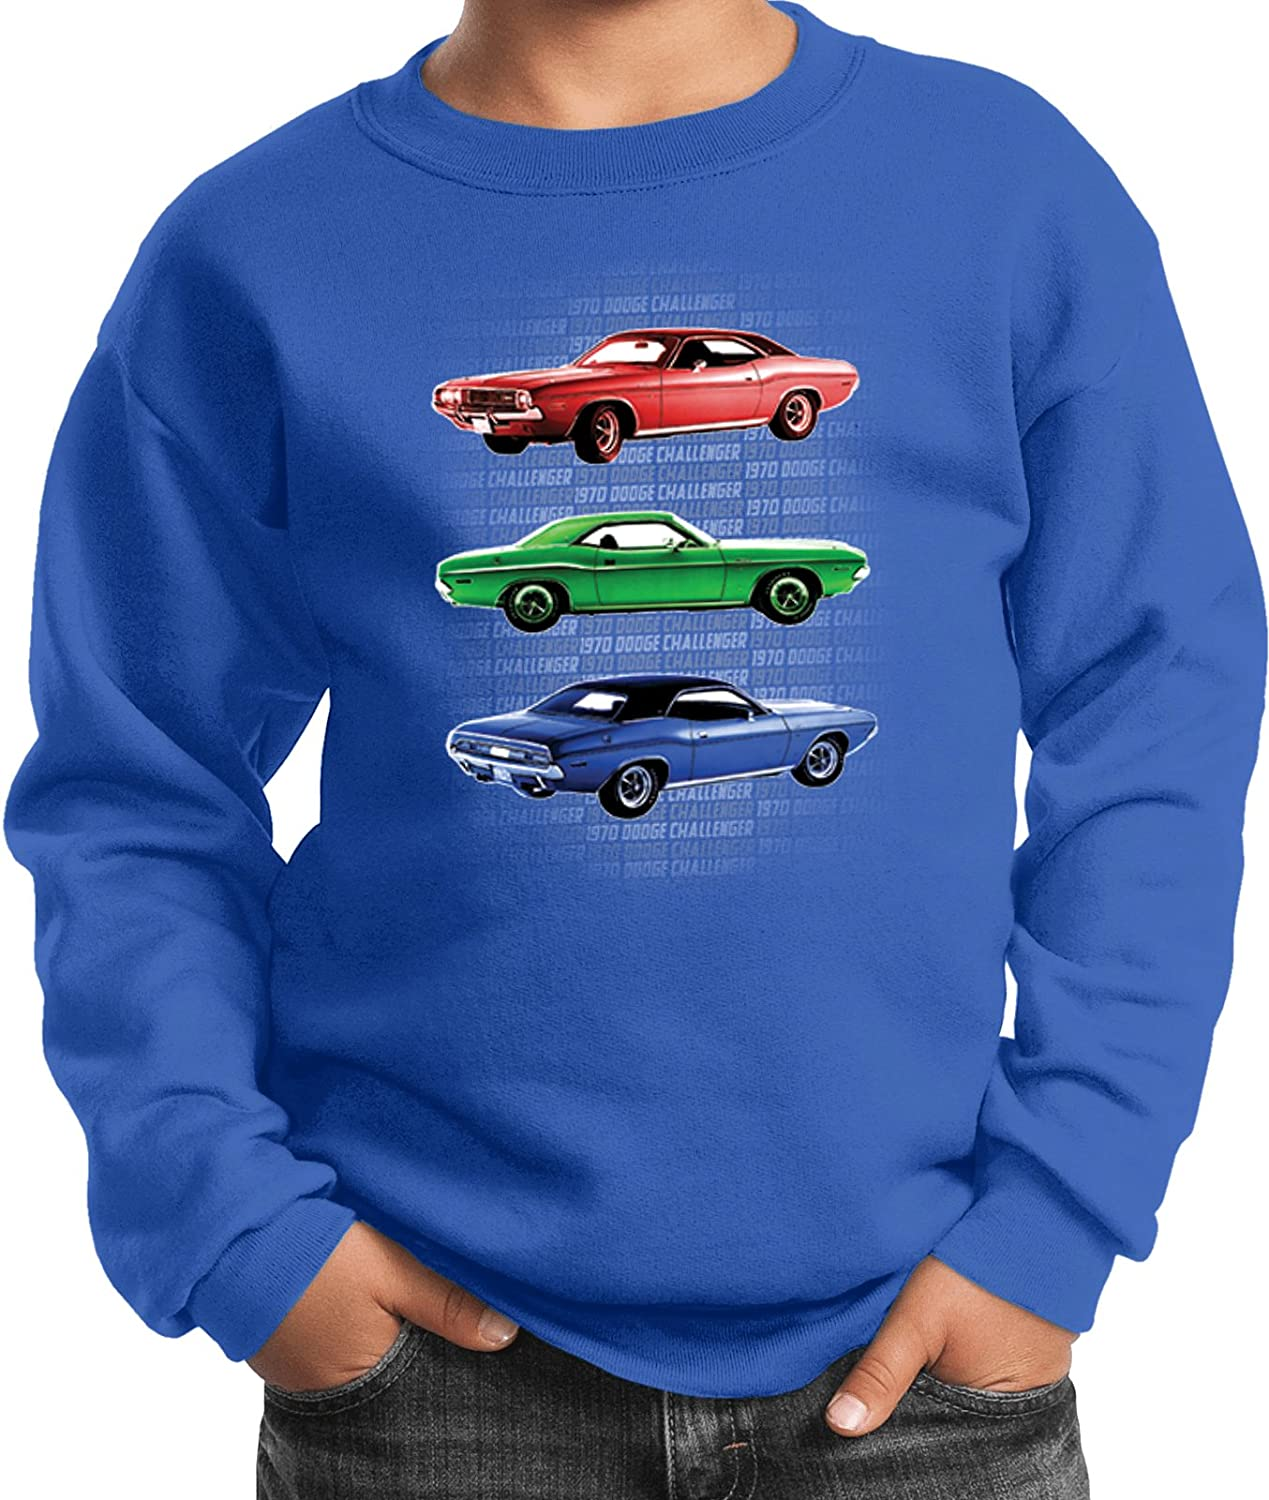 Buy Cool Shirts Kids Dodge Sweatshirt 1970 Challengers Youth Sweat Shirt